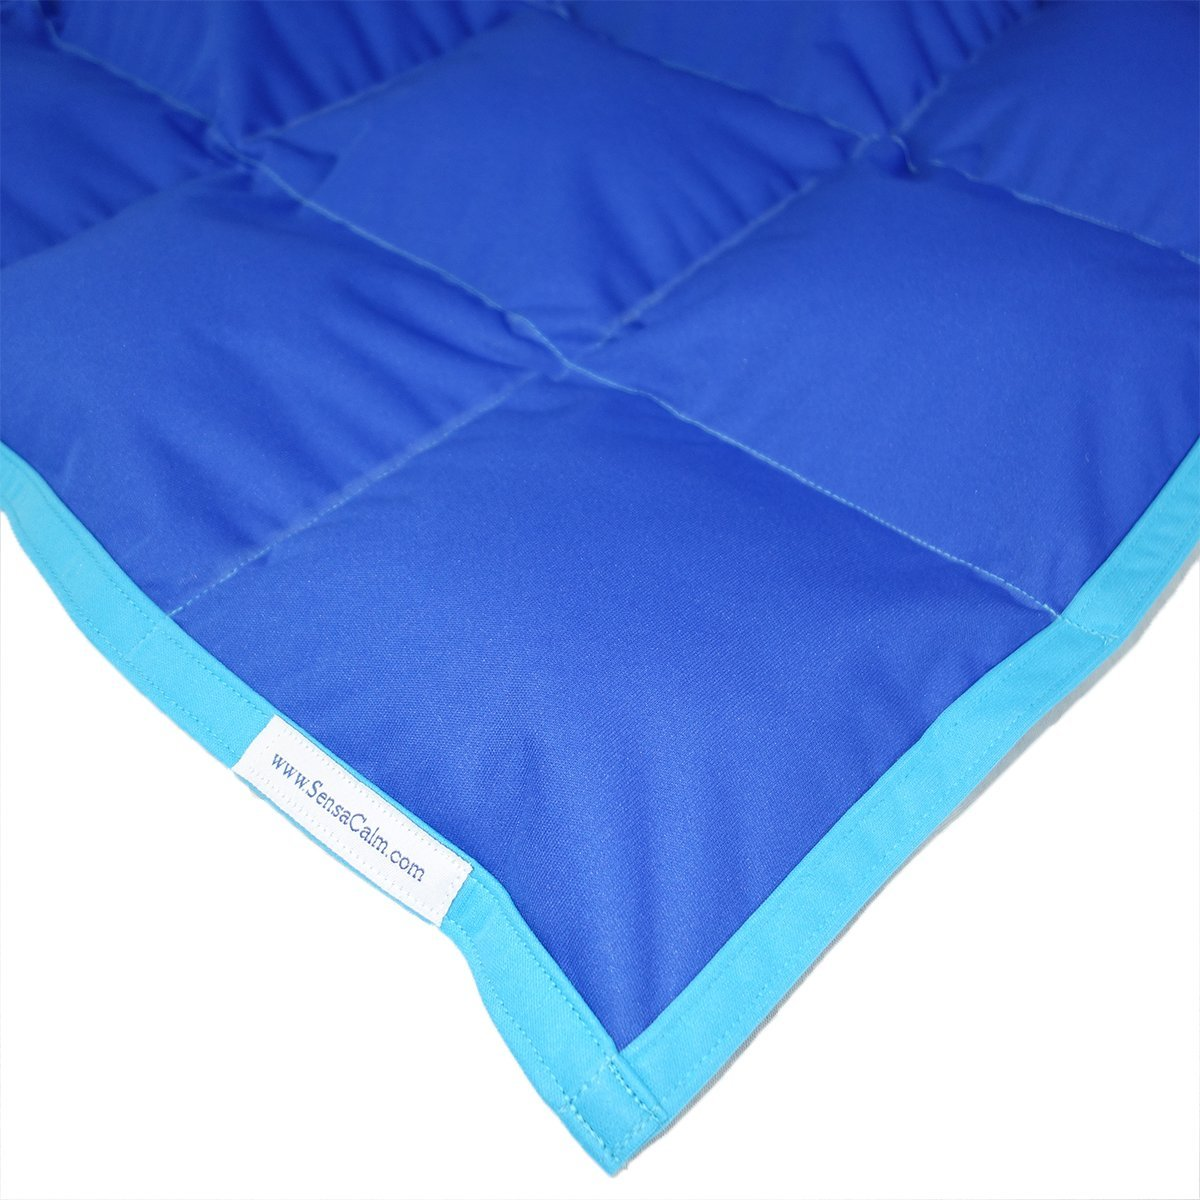 SensaCalm Therapeutic Medium Weighted Blanket - Dazzling Blue with Scuba Blue-8 lb (for 60 lb child)